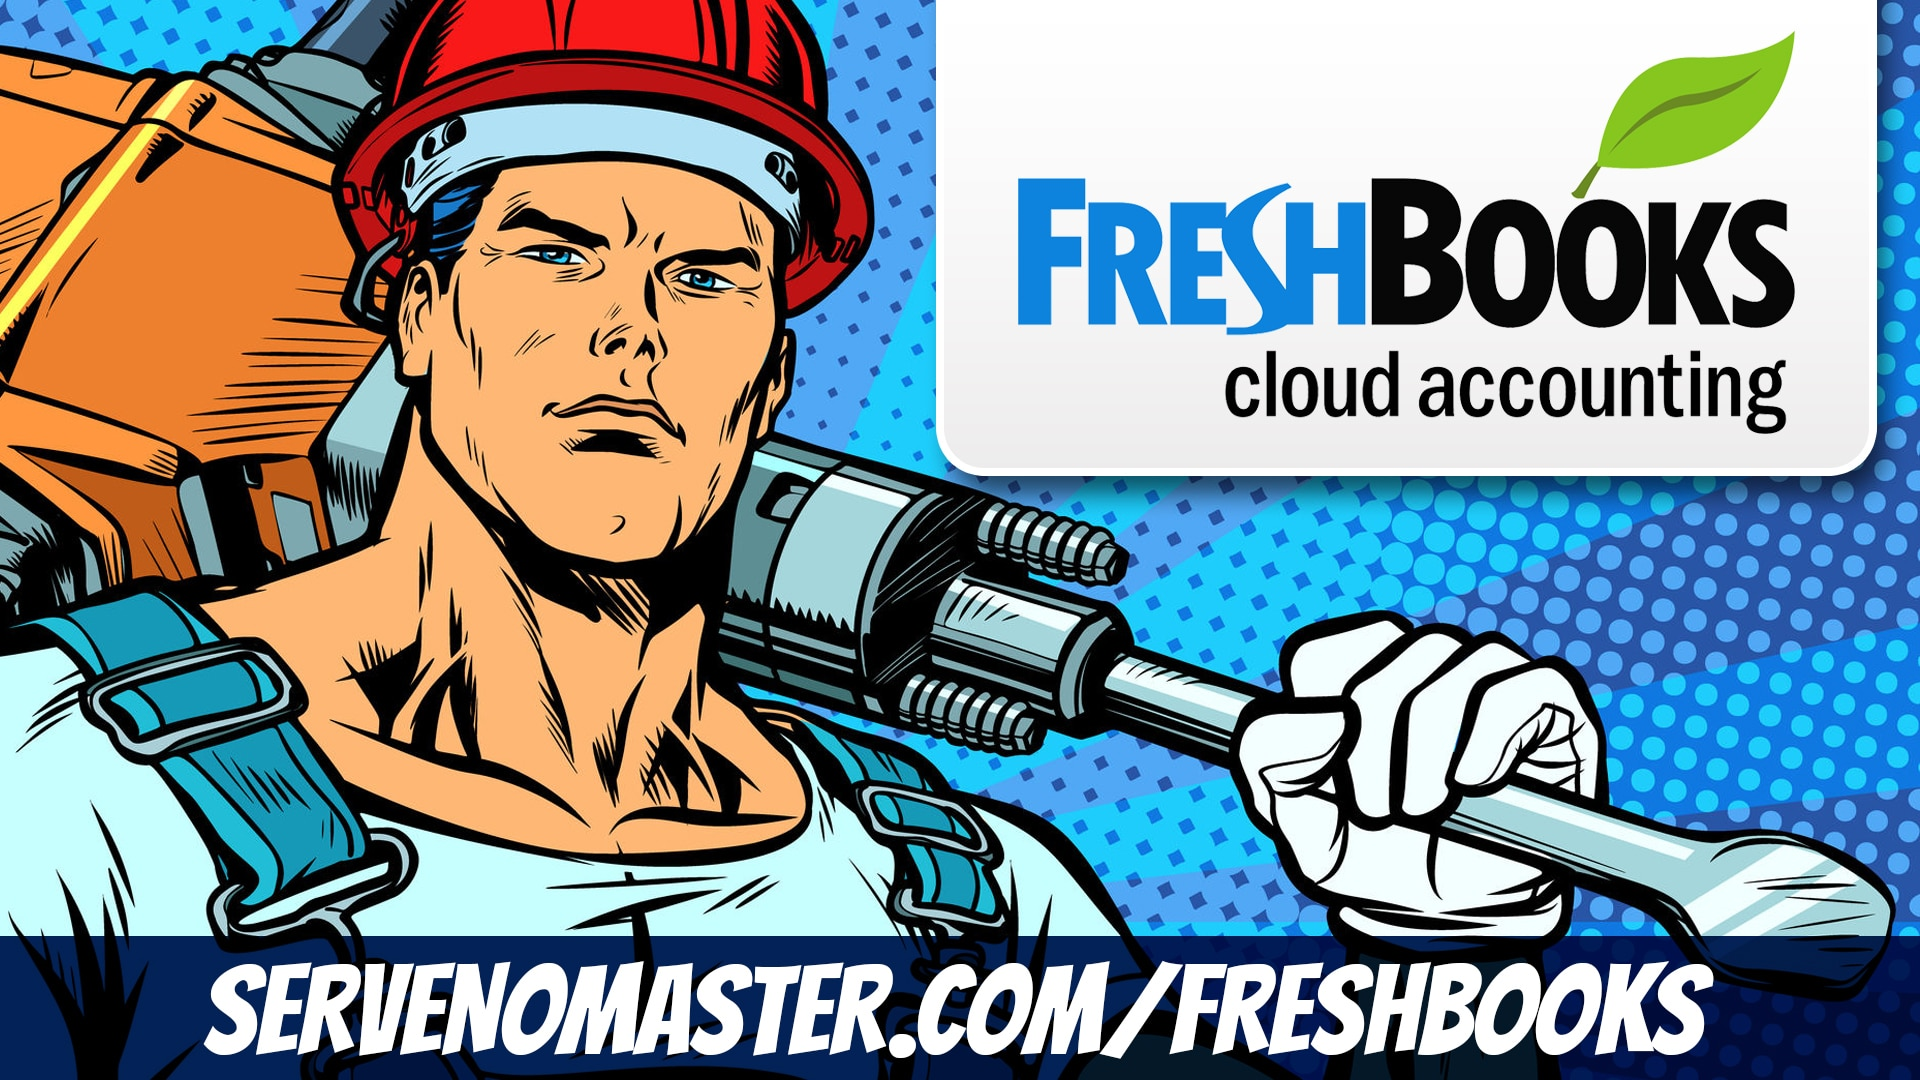 fresh books brand banner animated